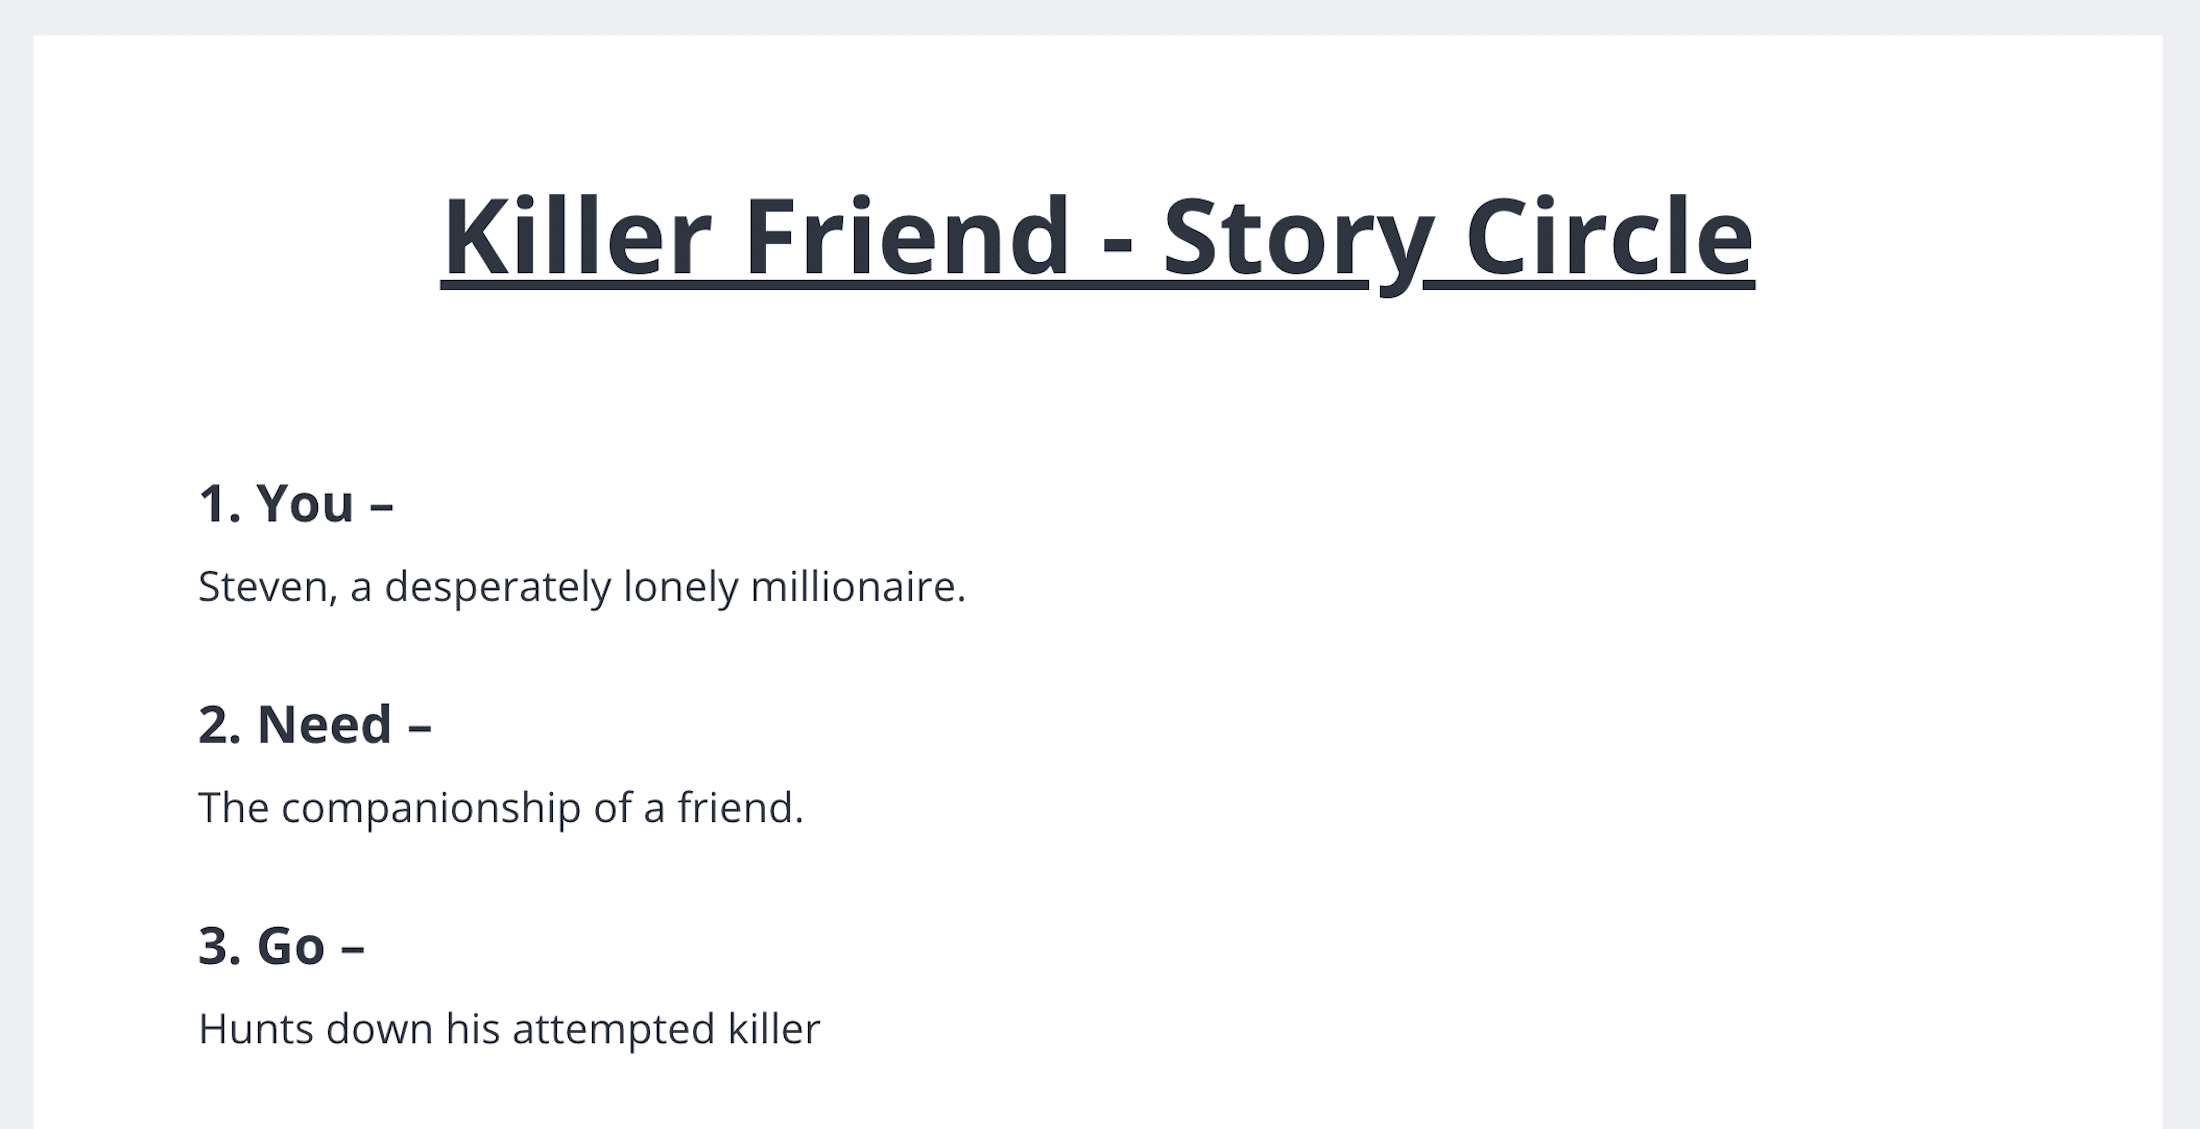 How to Brainstorm an Idea in StudioBinder - Story Circle Outline